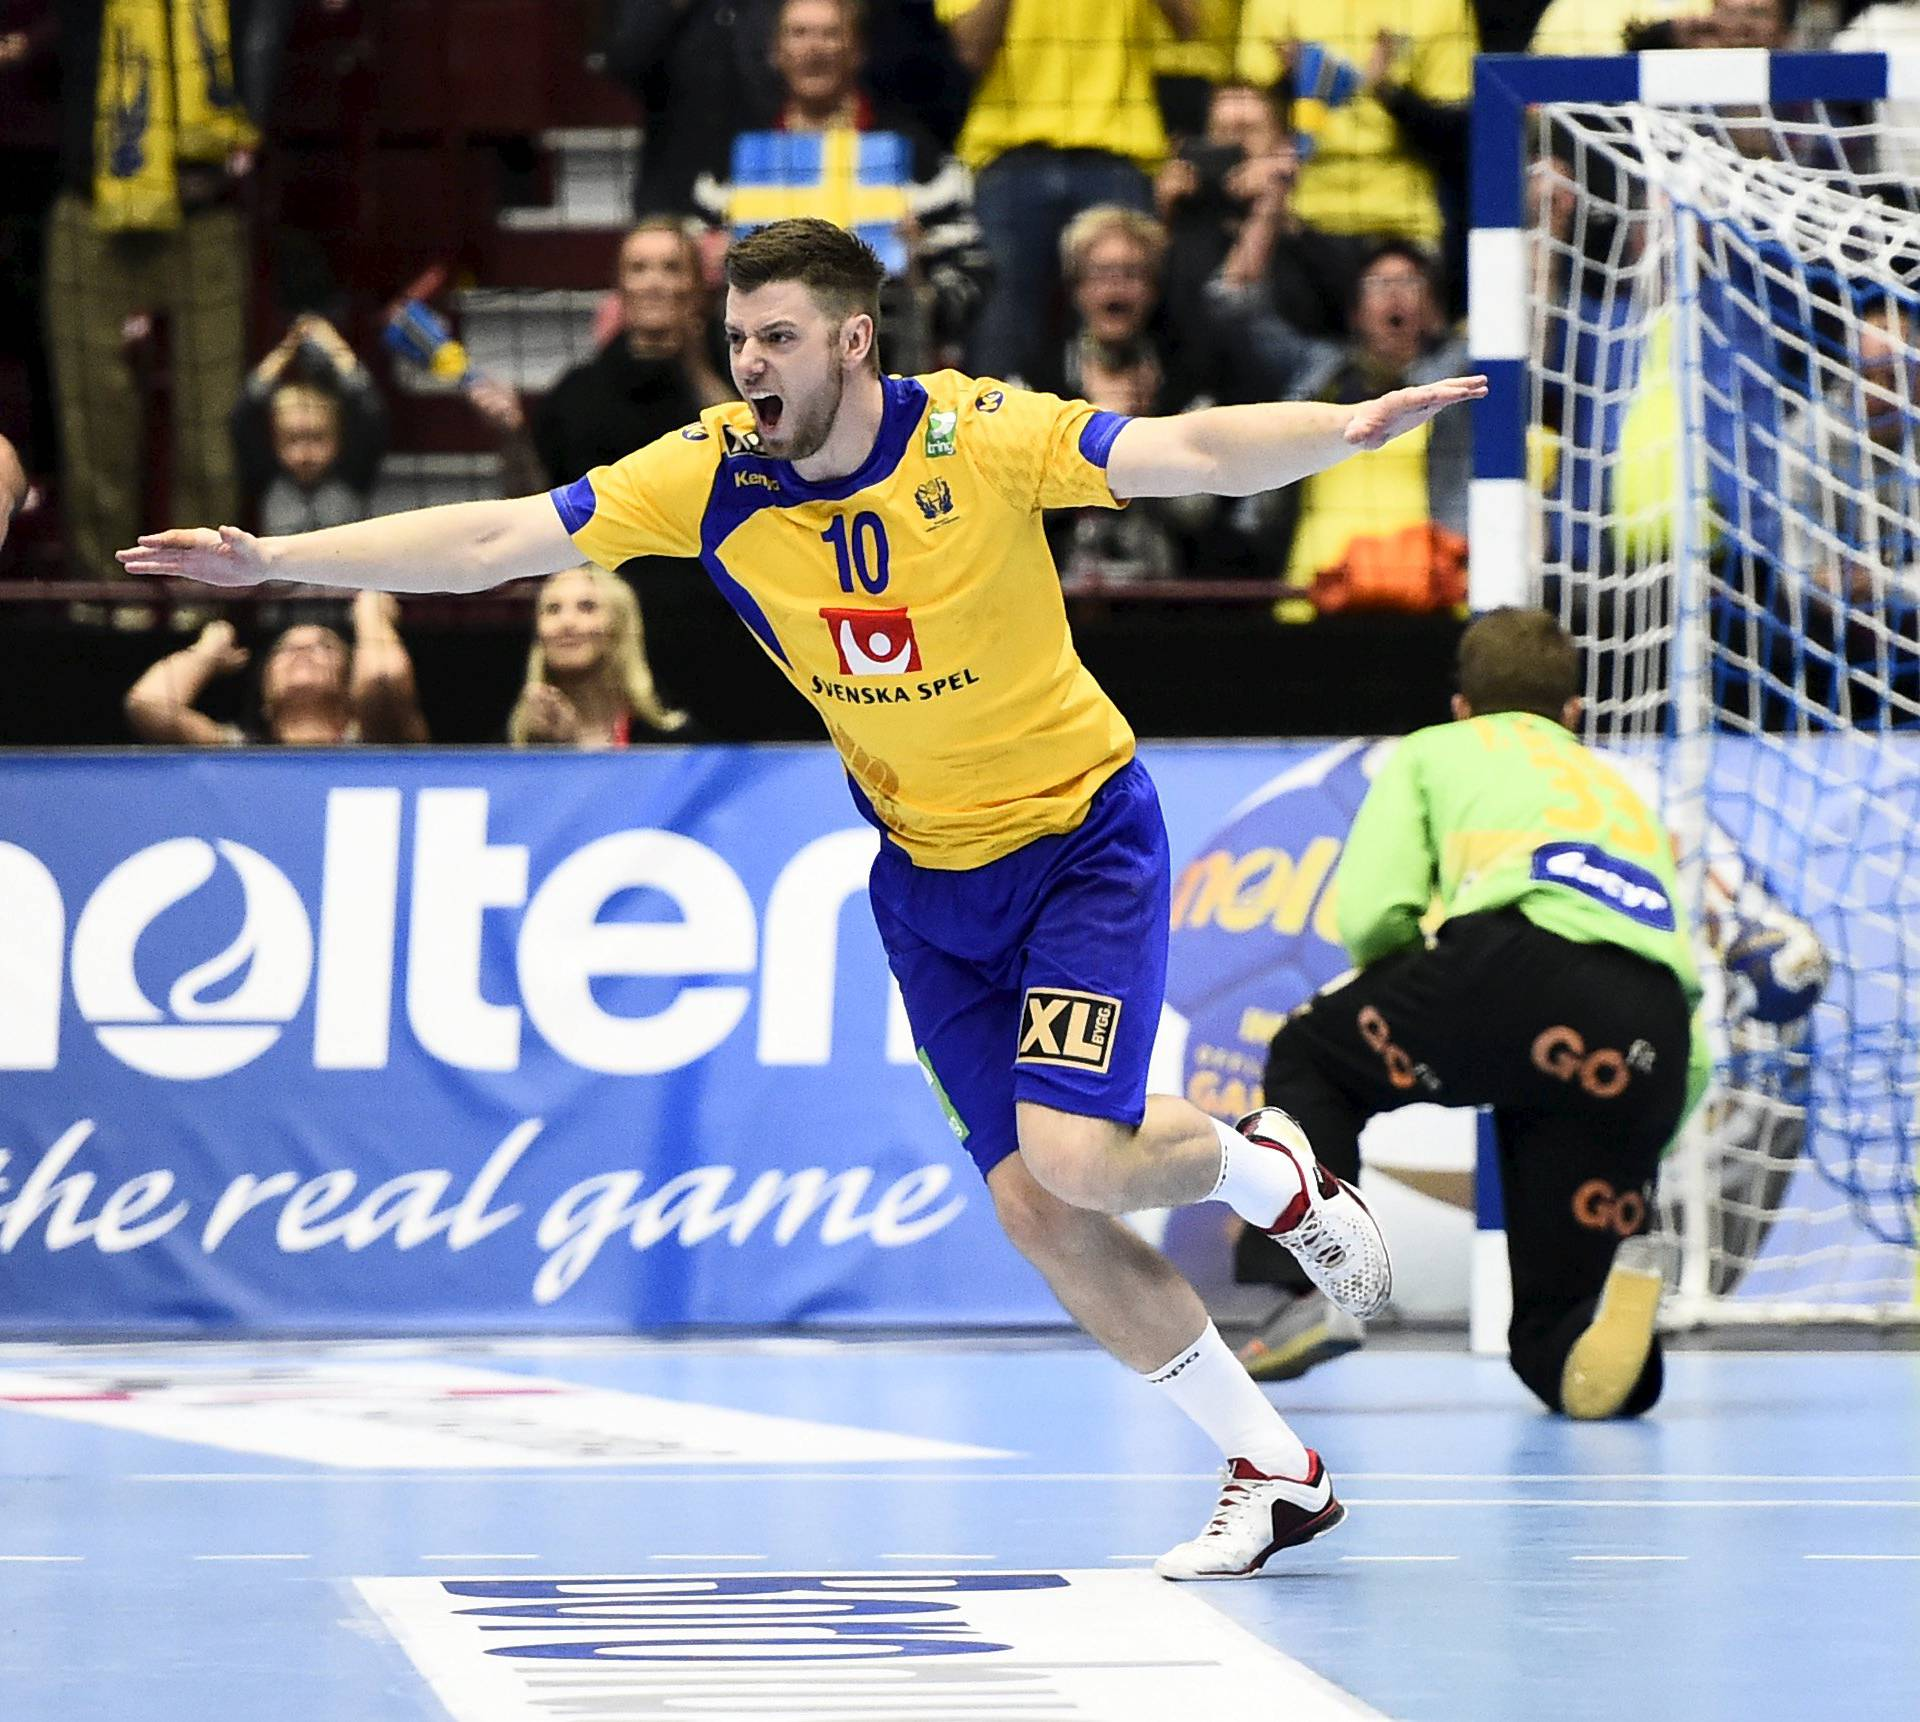 Sweden's Niclas Ekberg celebrates after scoring a penalty during the men's handball Olympic Qualification Tournament group 2 match against Spain at Malmo Arena in Malmo